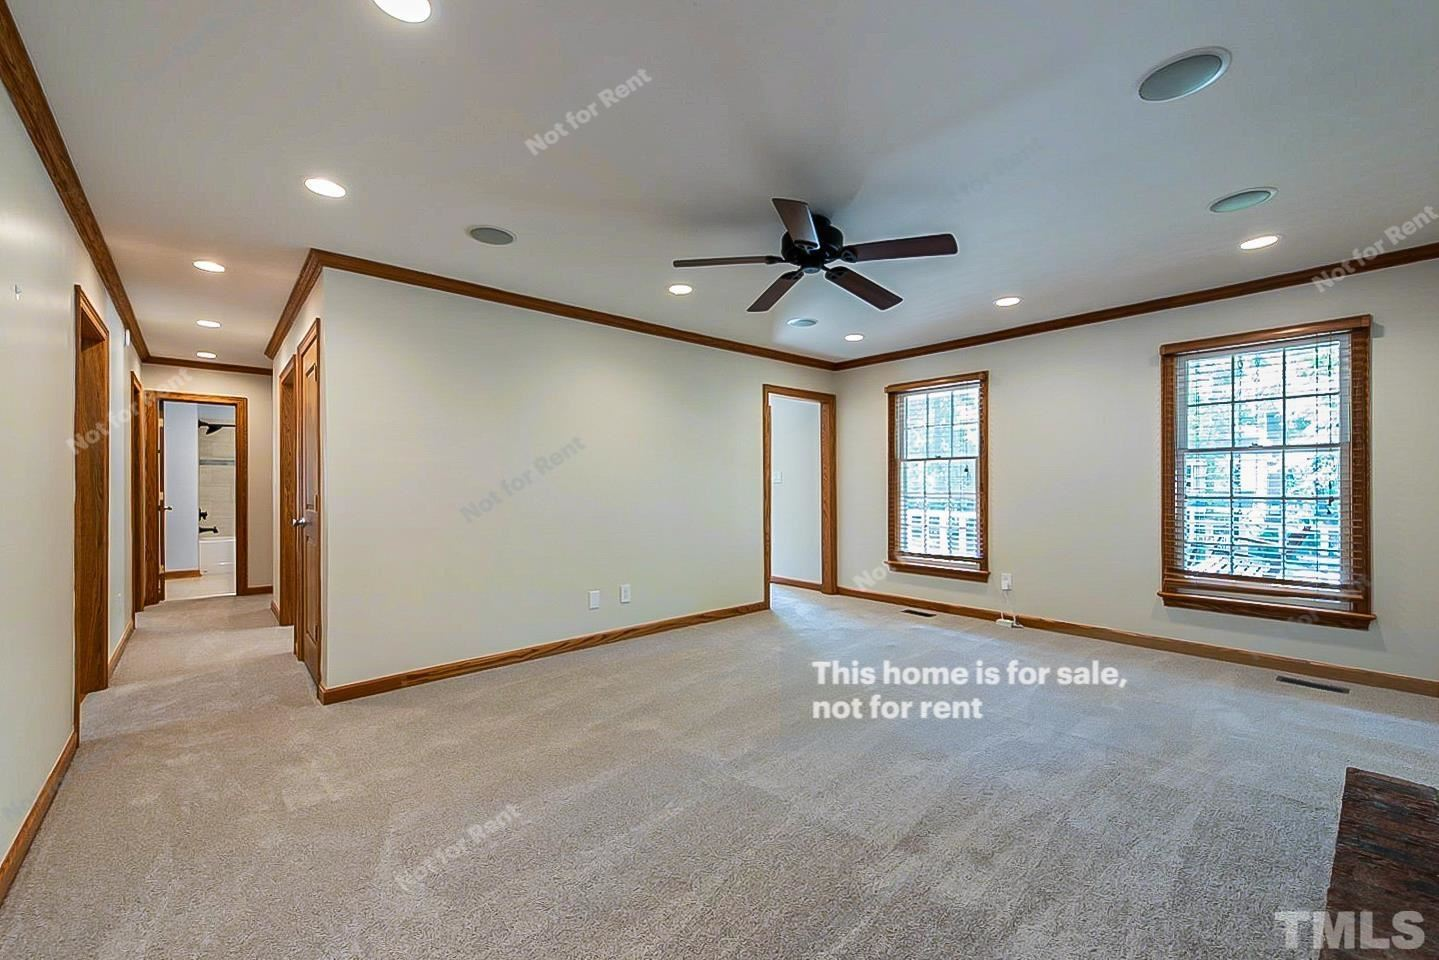 Photo of 332 Trappers Run Drive, Cary, NC 27513 (MLS # 2415631)